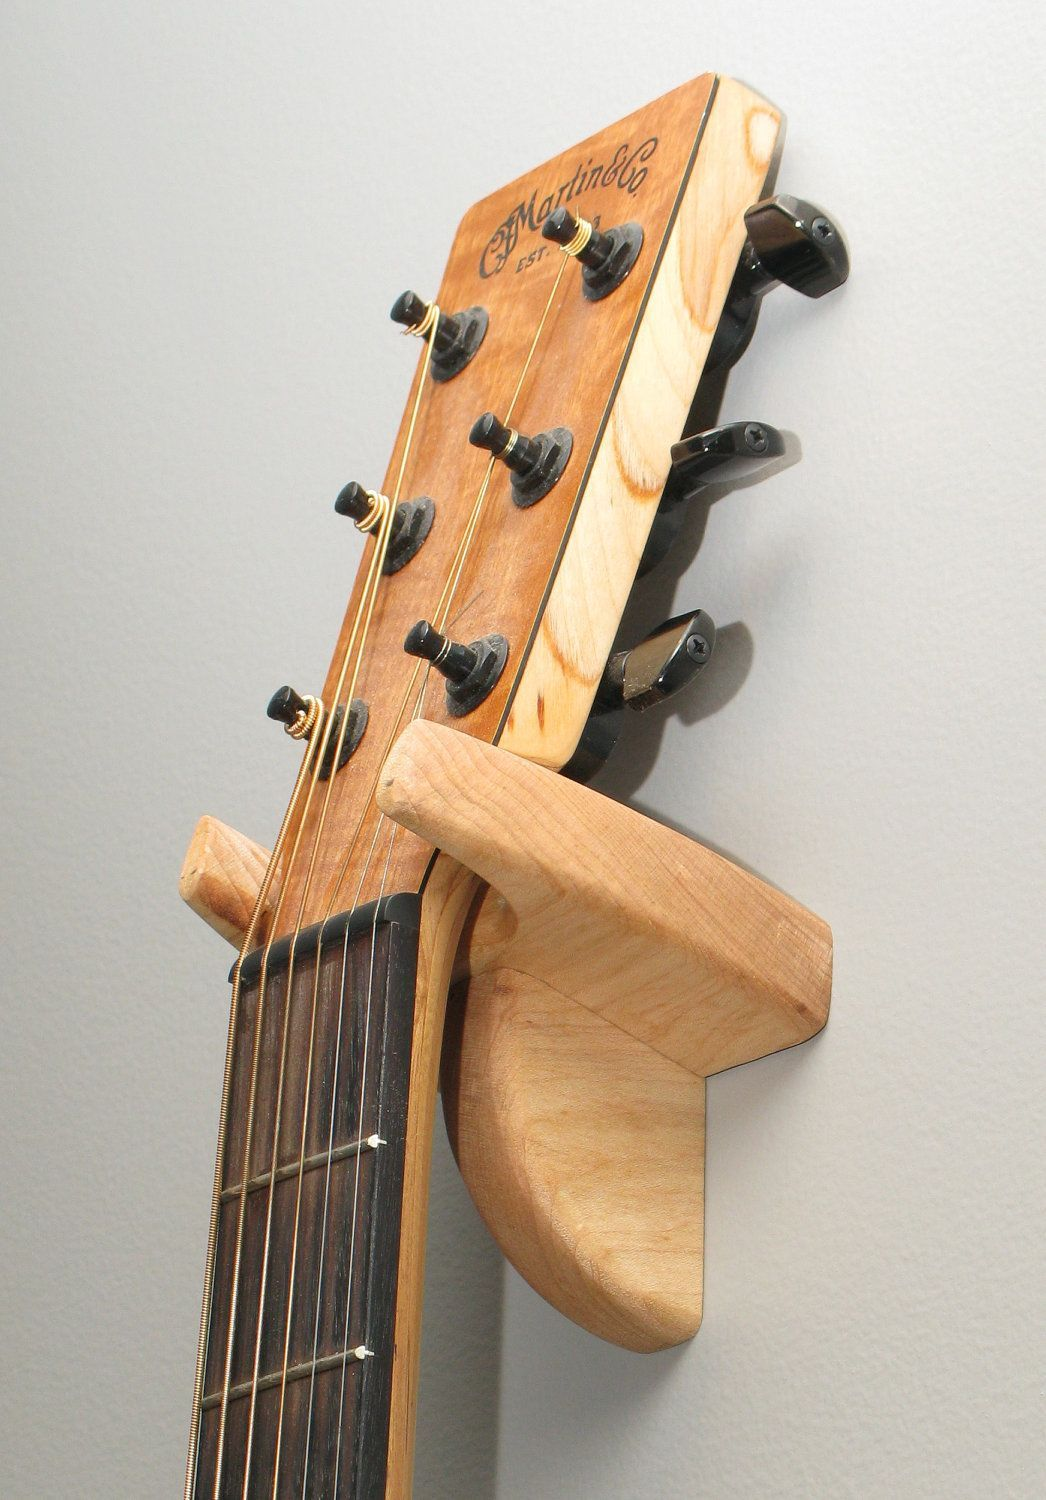 Acoustic Guitar Hanger I Like This One Much Better Than